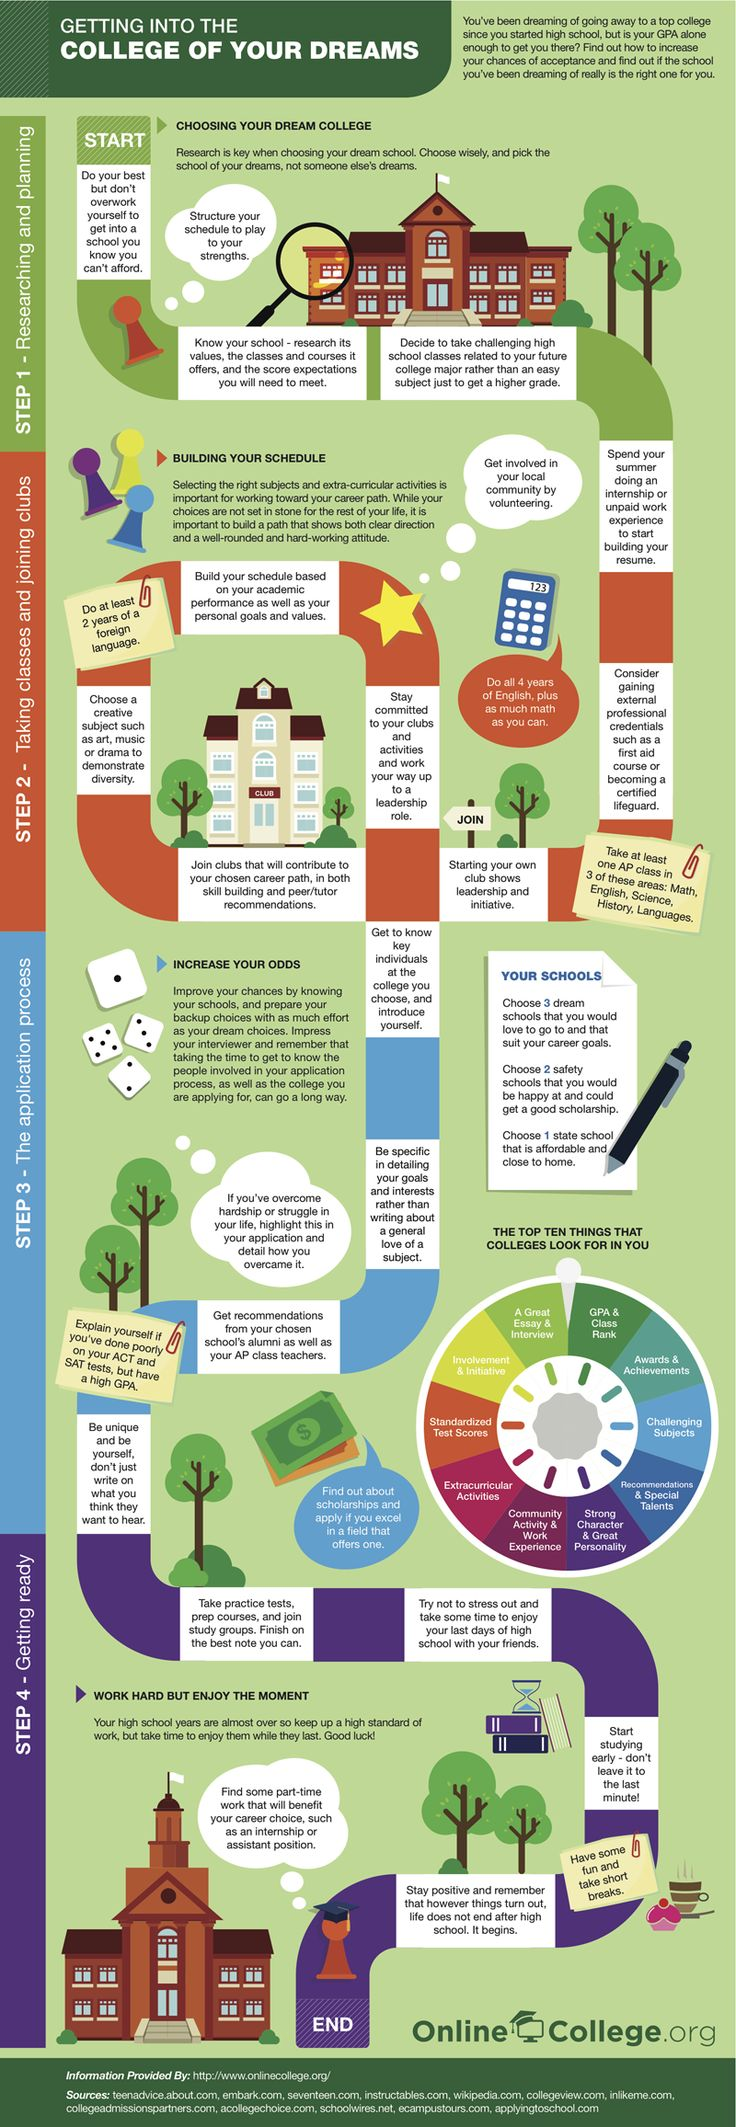 Infographic: Getting into the College of Your Dreams. Find out how to increase your chances of acceptance and find out if the school you've been dreaming about is really right for you. #college